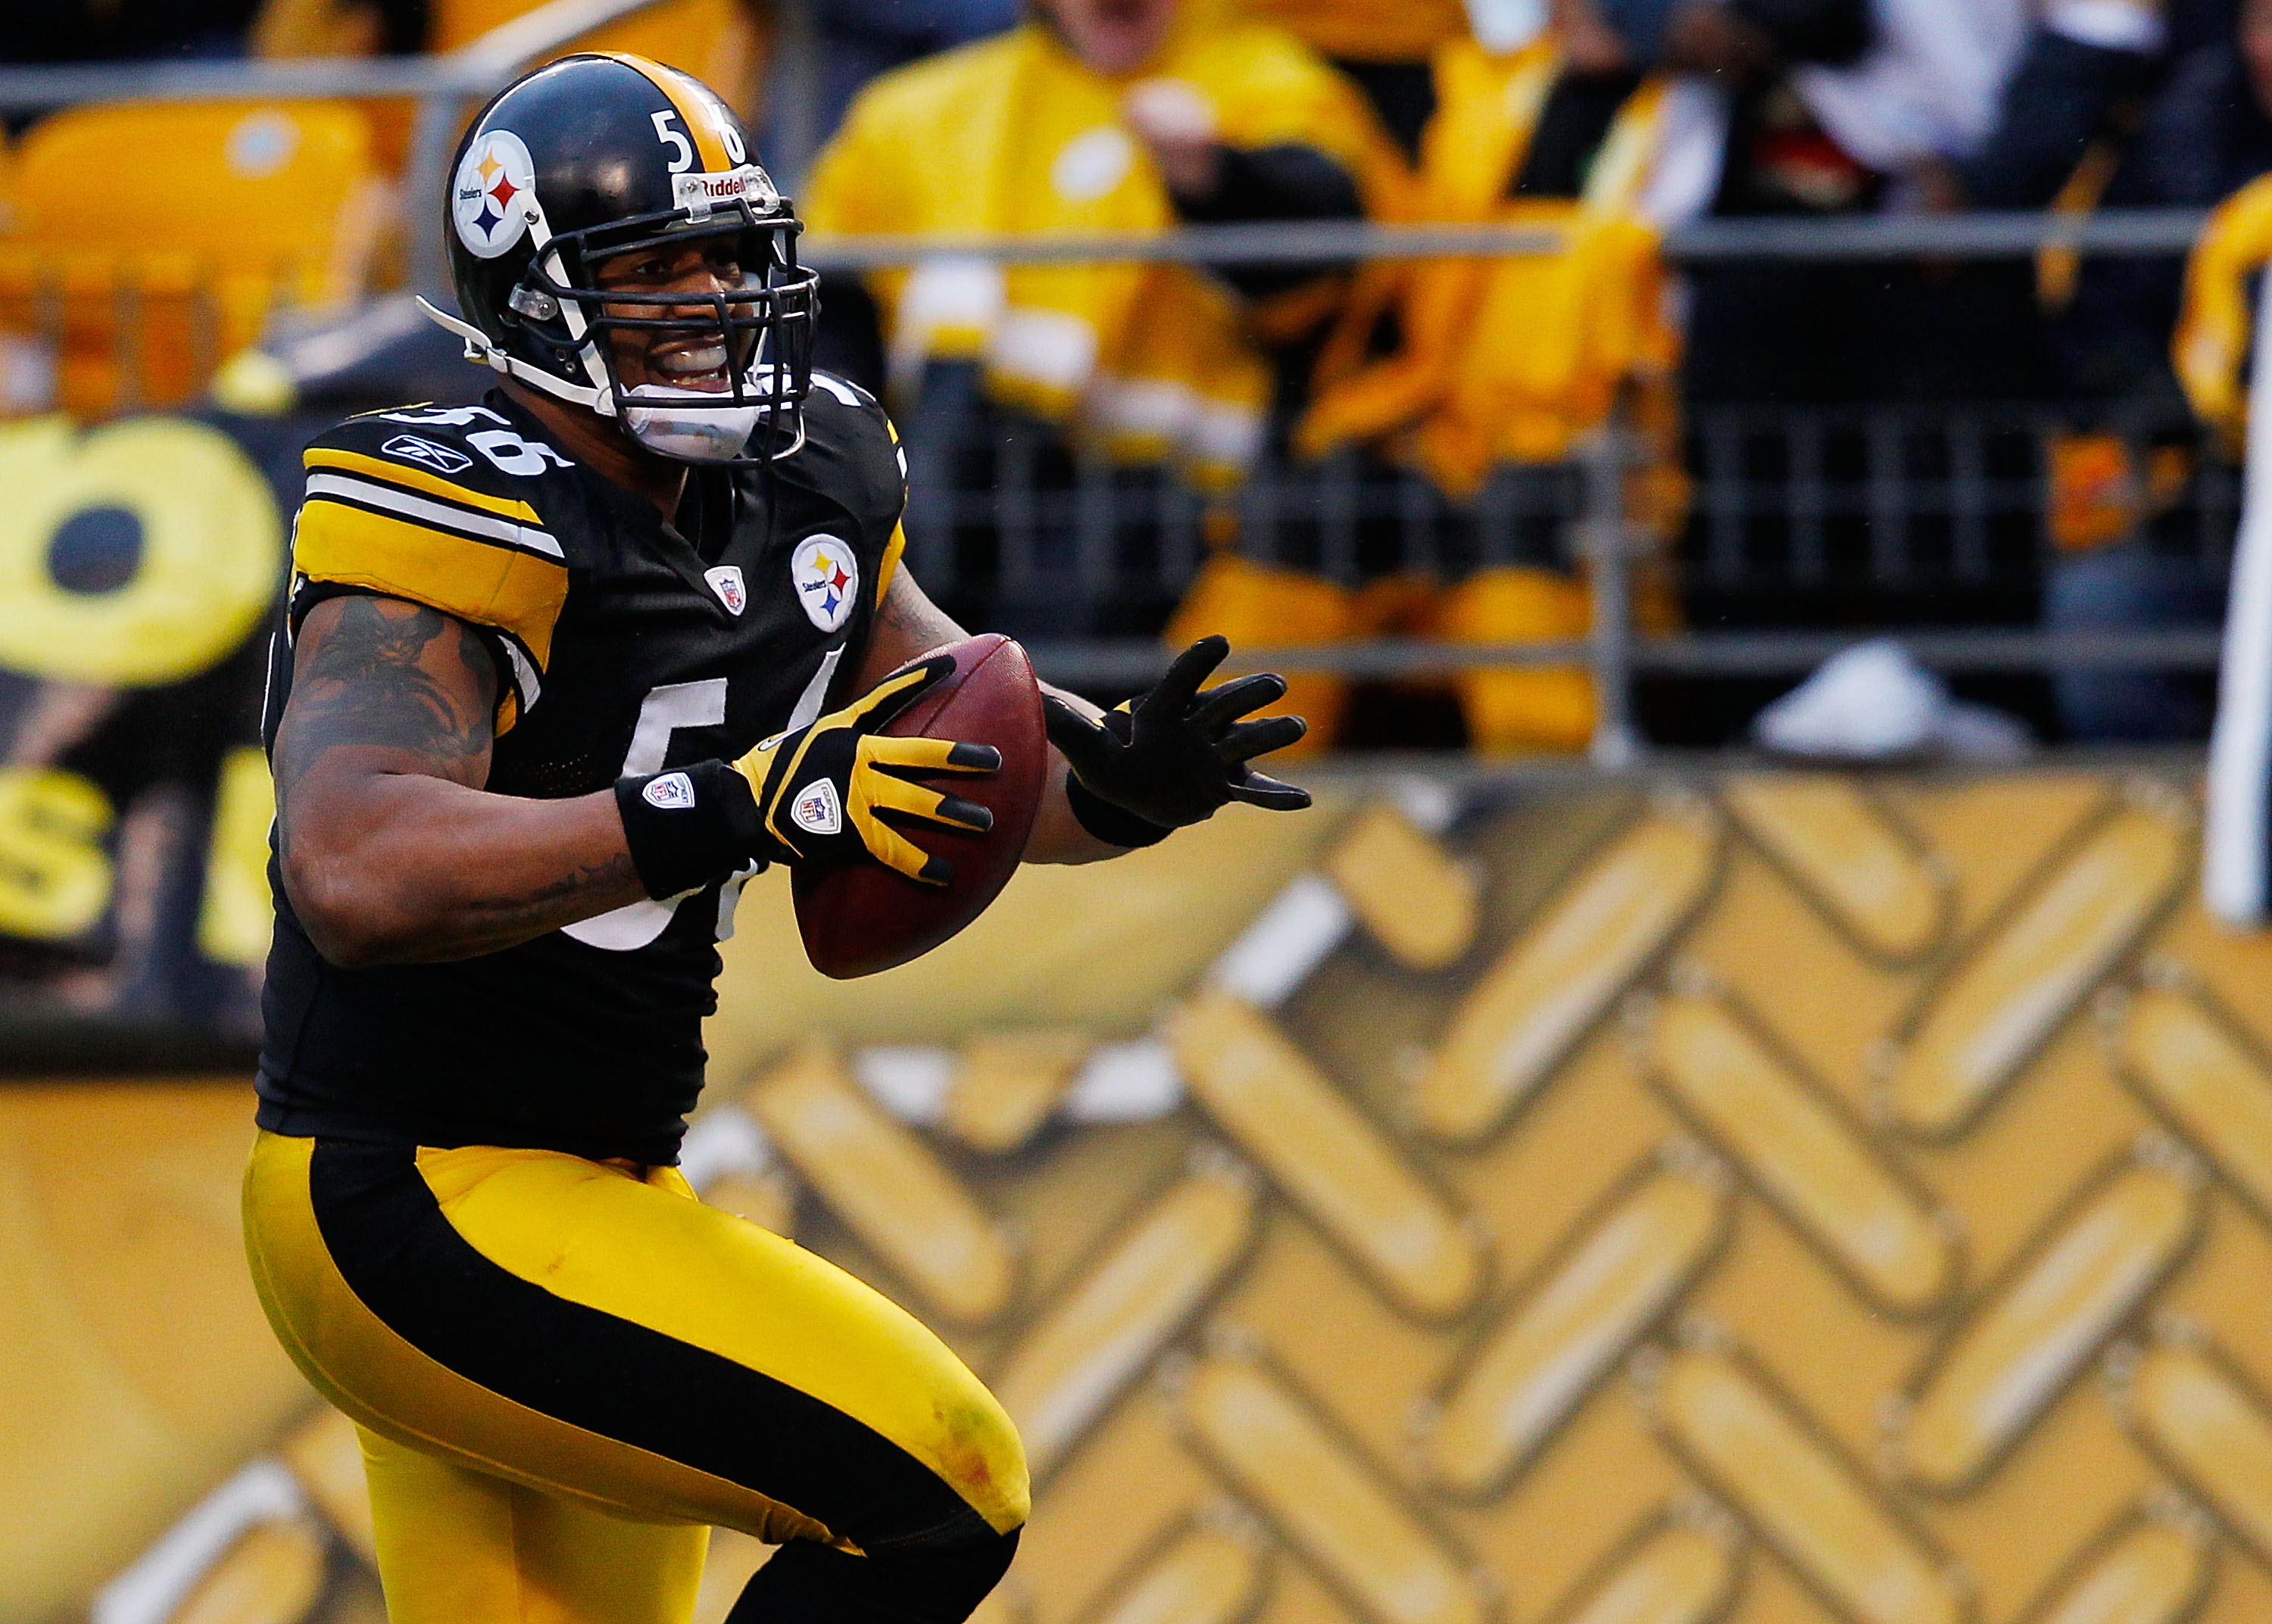 PITTSBURGH - DECEMBER 12:  LaMarr Woodley #56 of the Pittsburgh Steelers returns an interception for a touchdown against the Cincinnati Bengals during the game on December 12, 2010 at Heinz Field in Pittsburgh, Pennsylvania.  (Photo by Jared Wickerham/Get